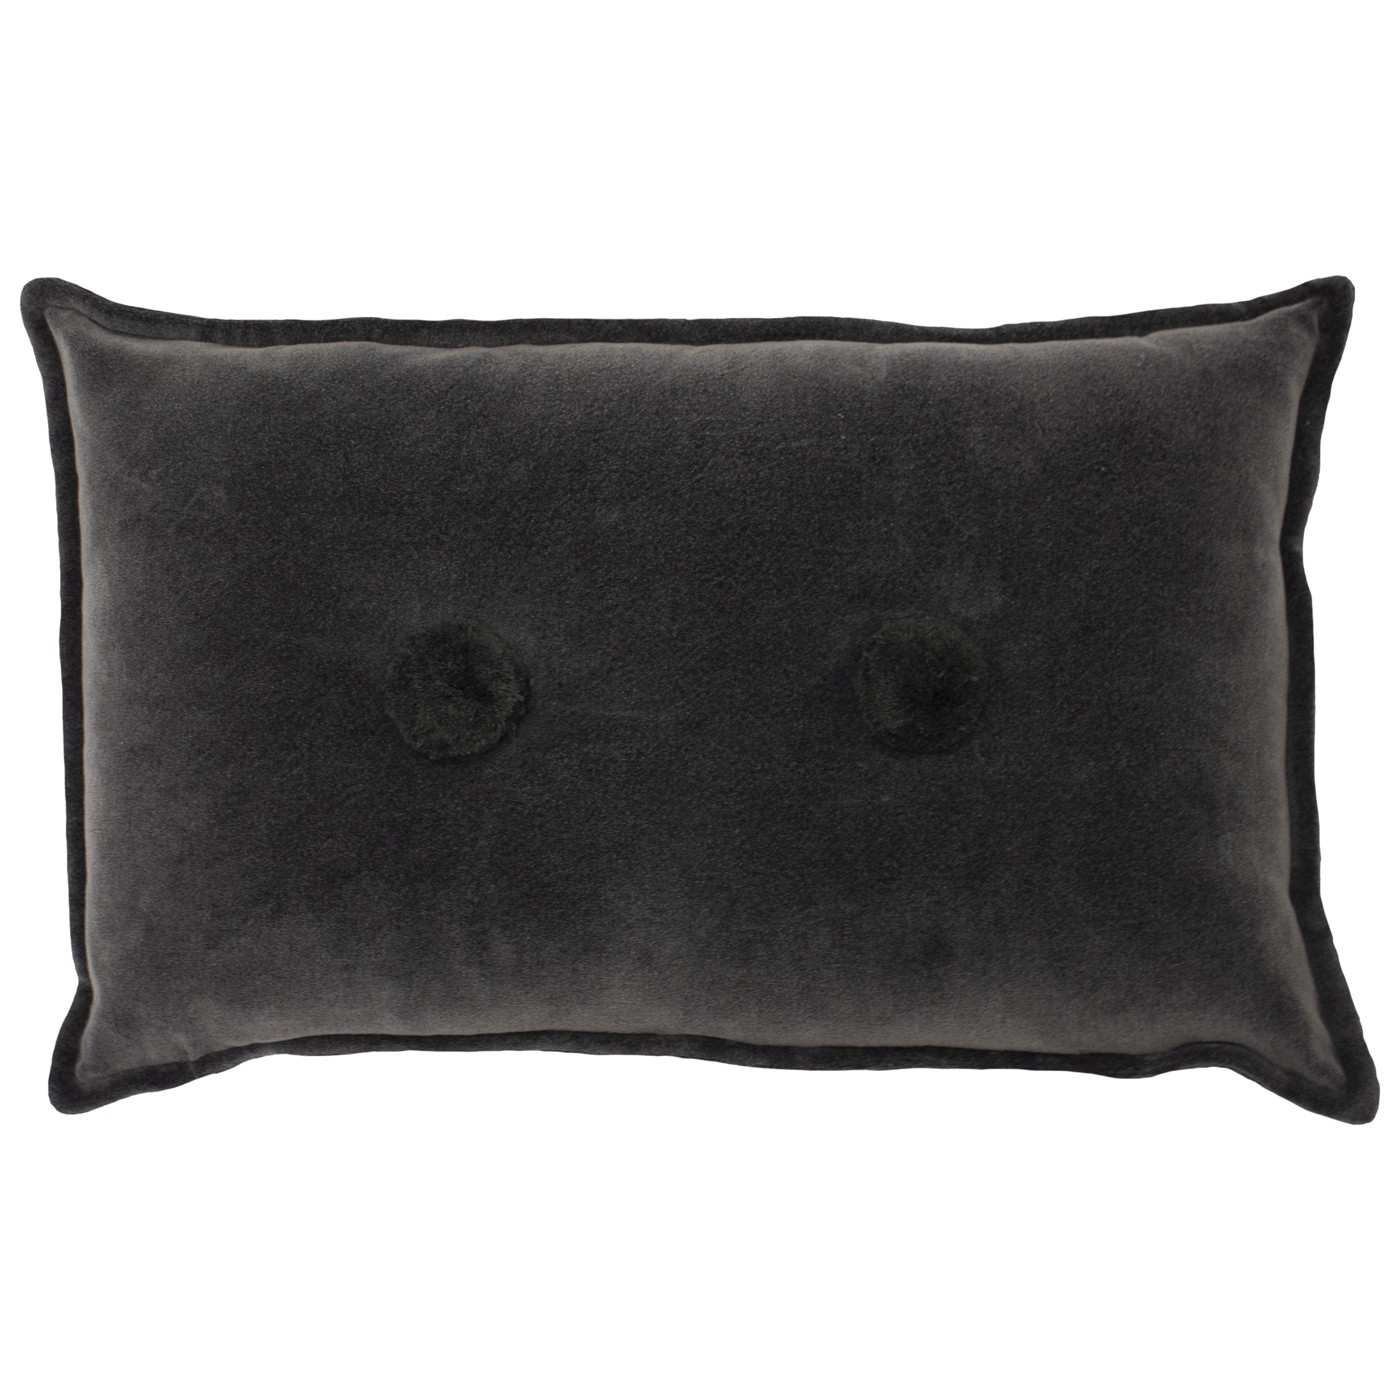 Bobble Cushion, Charcoal by furn.